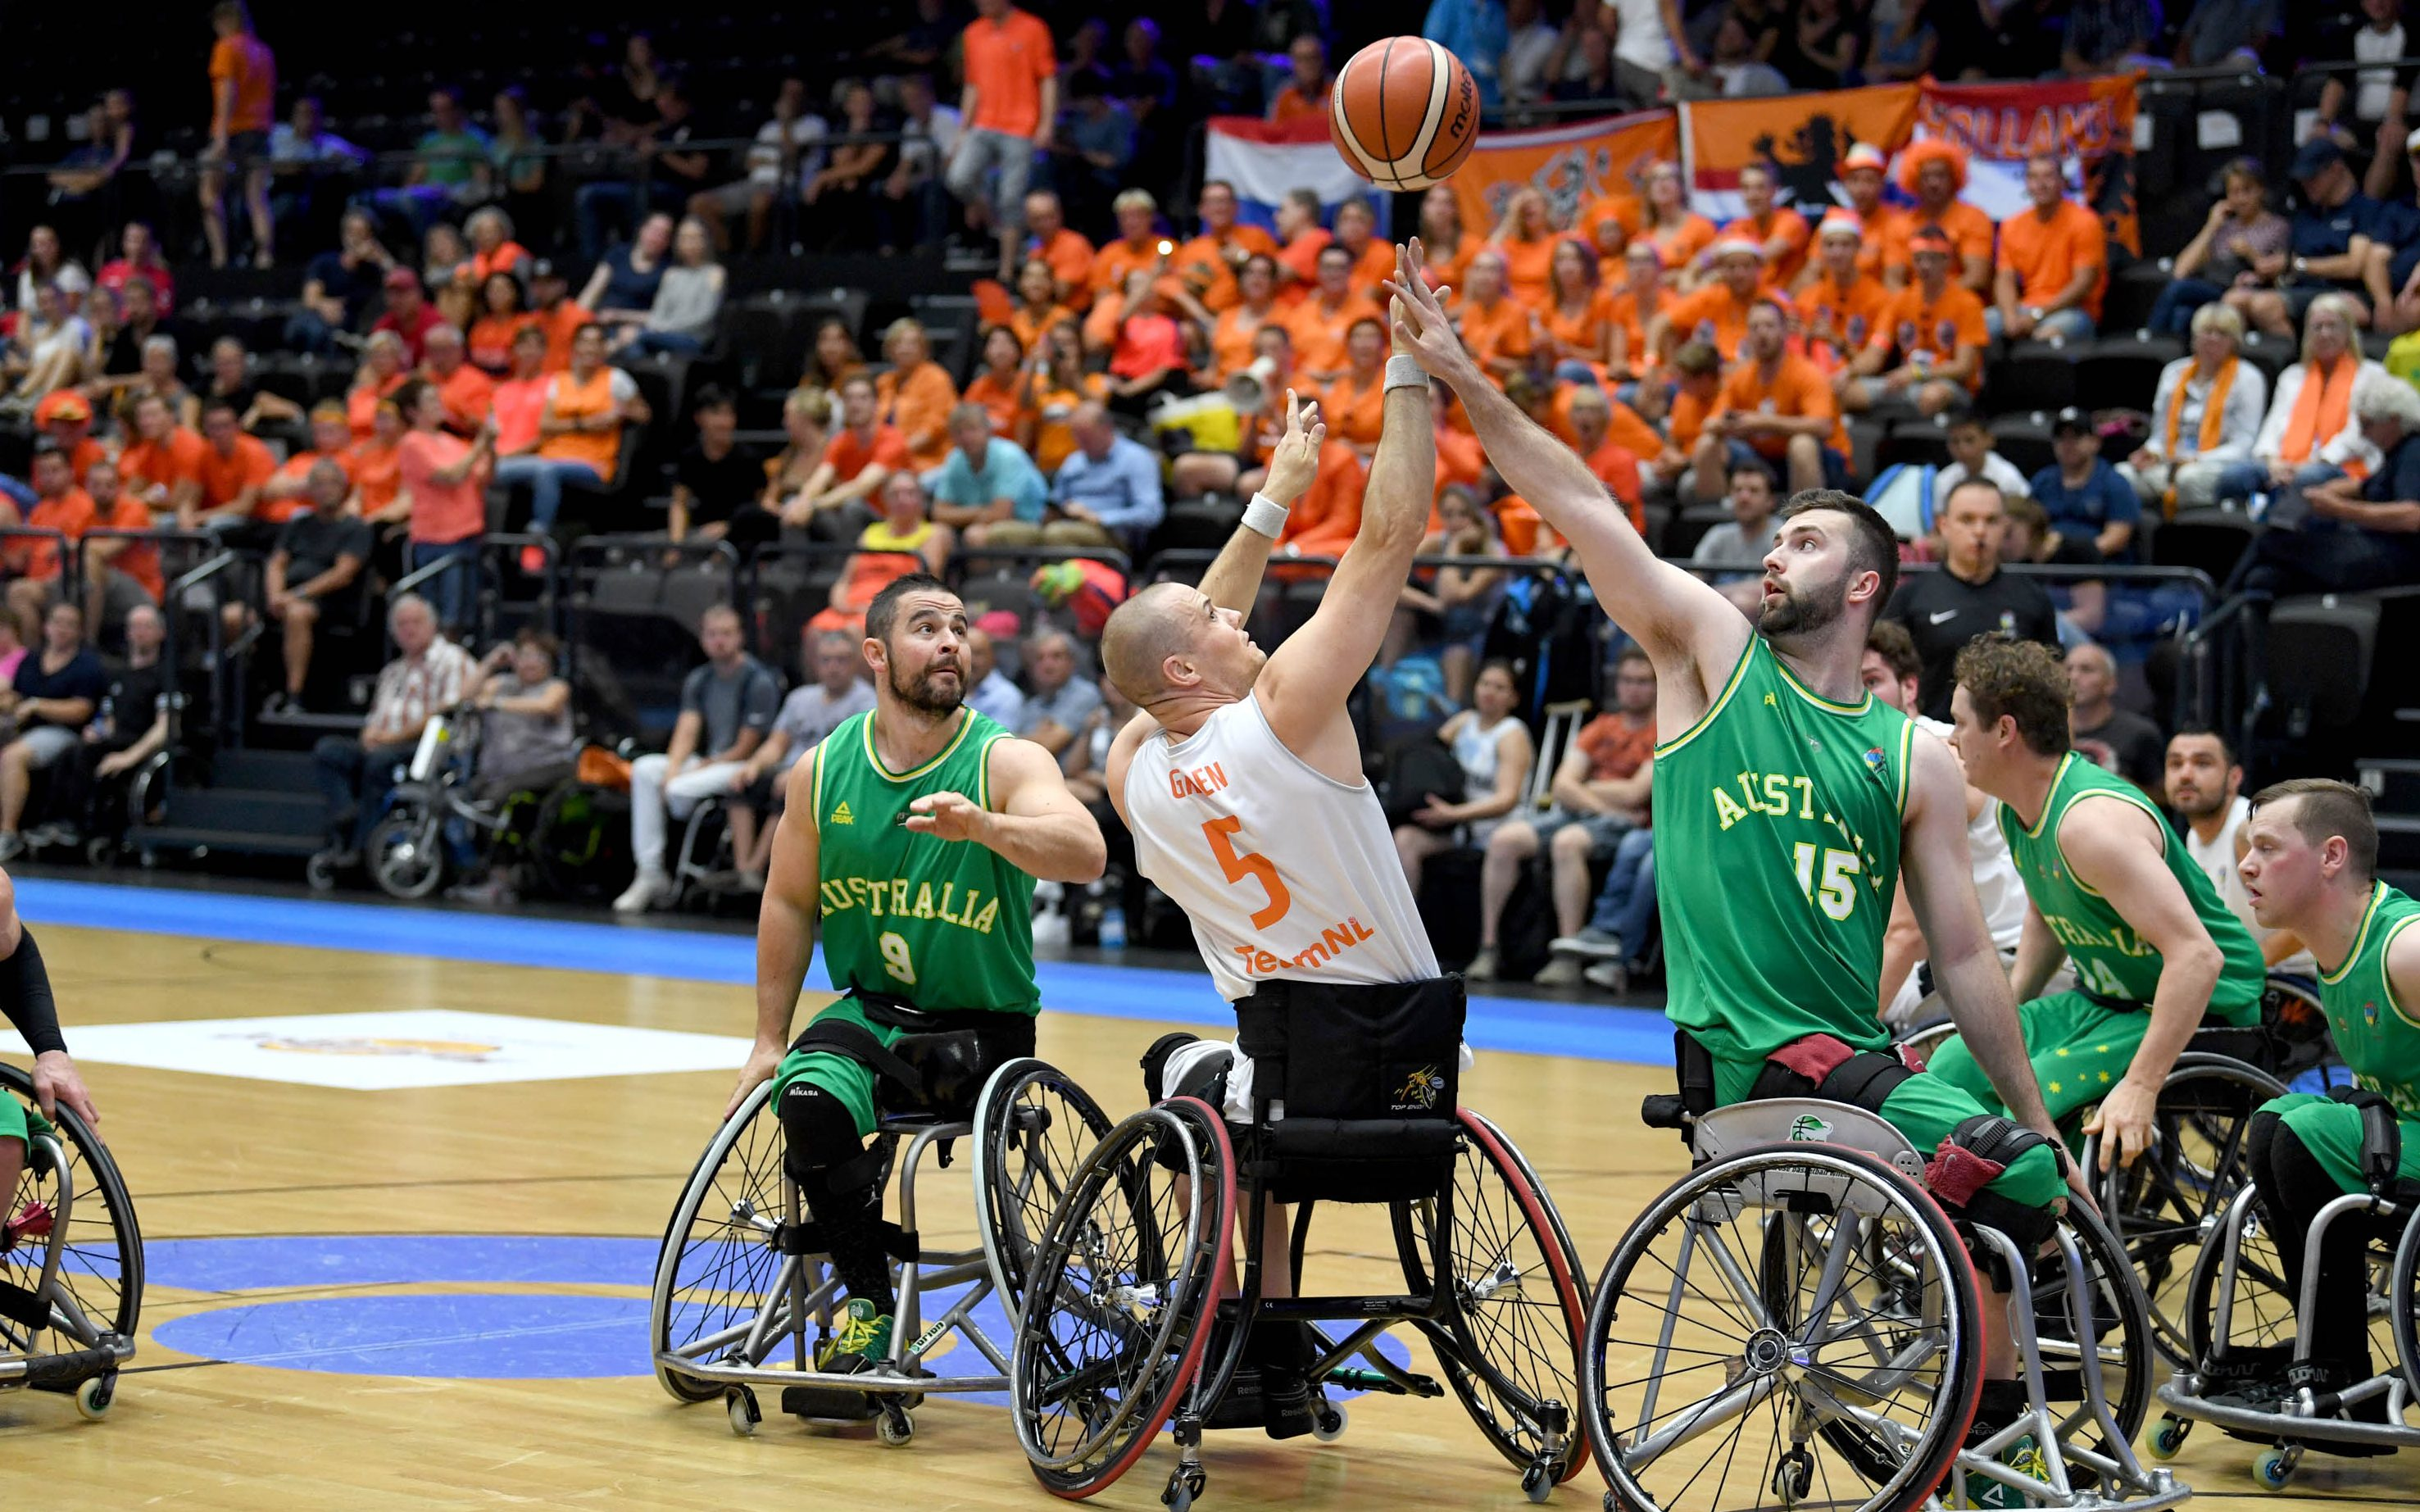 Rollers drop final game of 2018 IWBF World Champs group stage